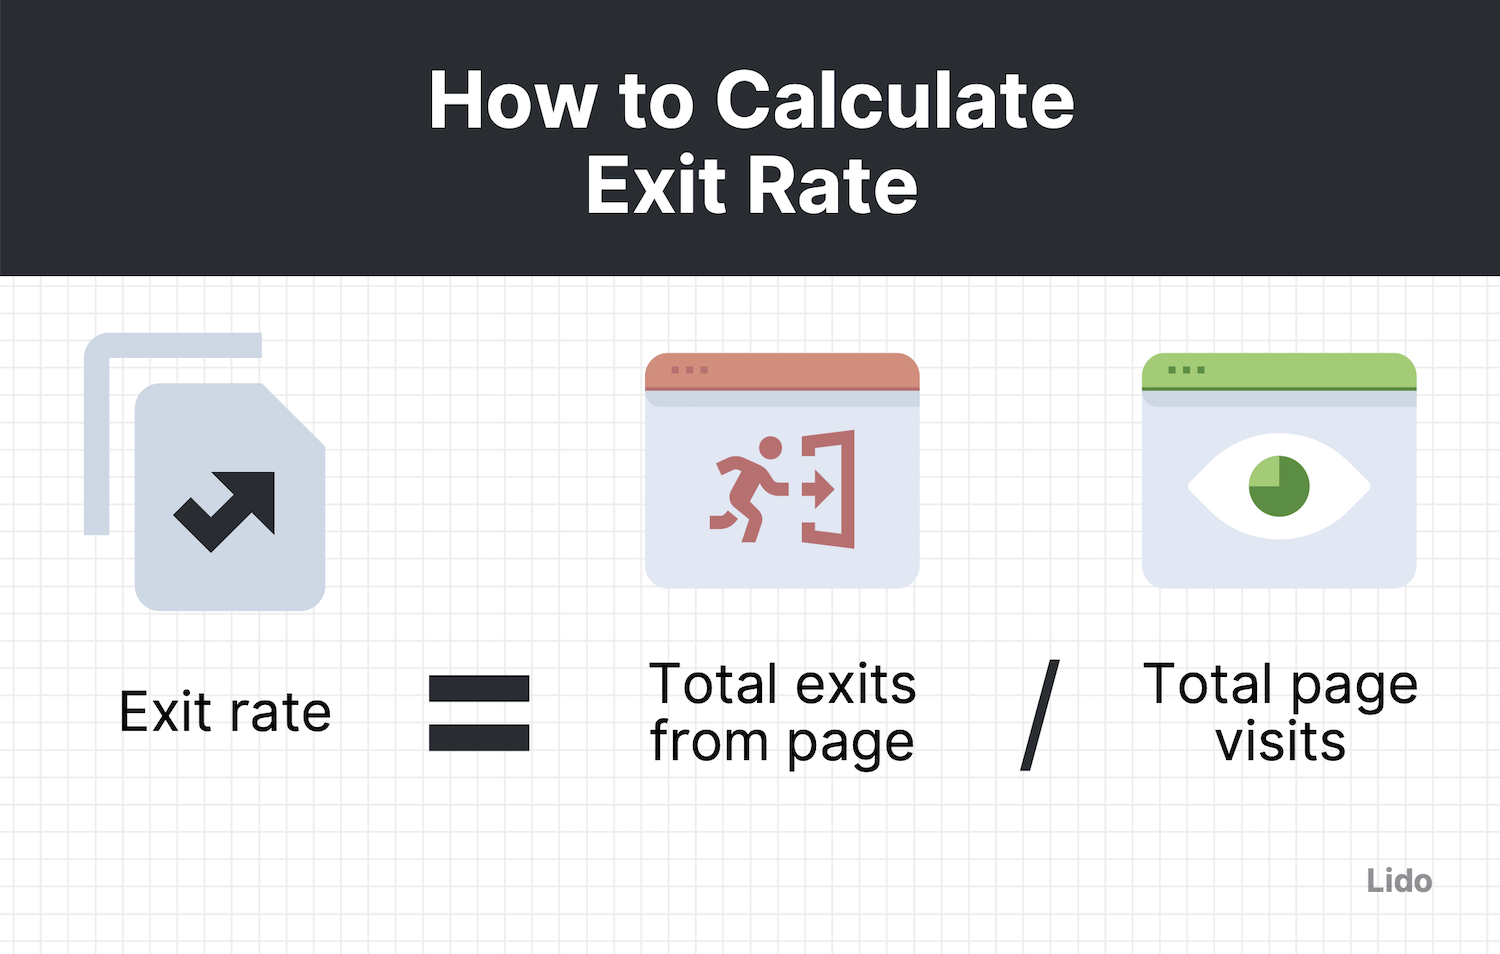 features exit rate equation (= total exits from page / total page visits) with corresponding graphics